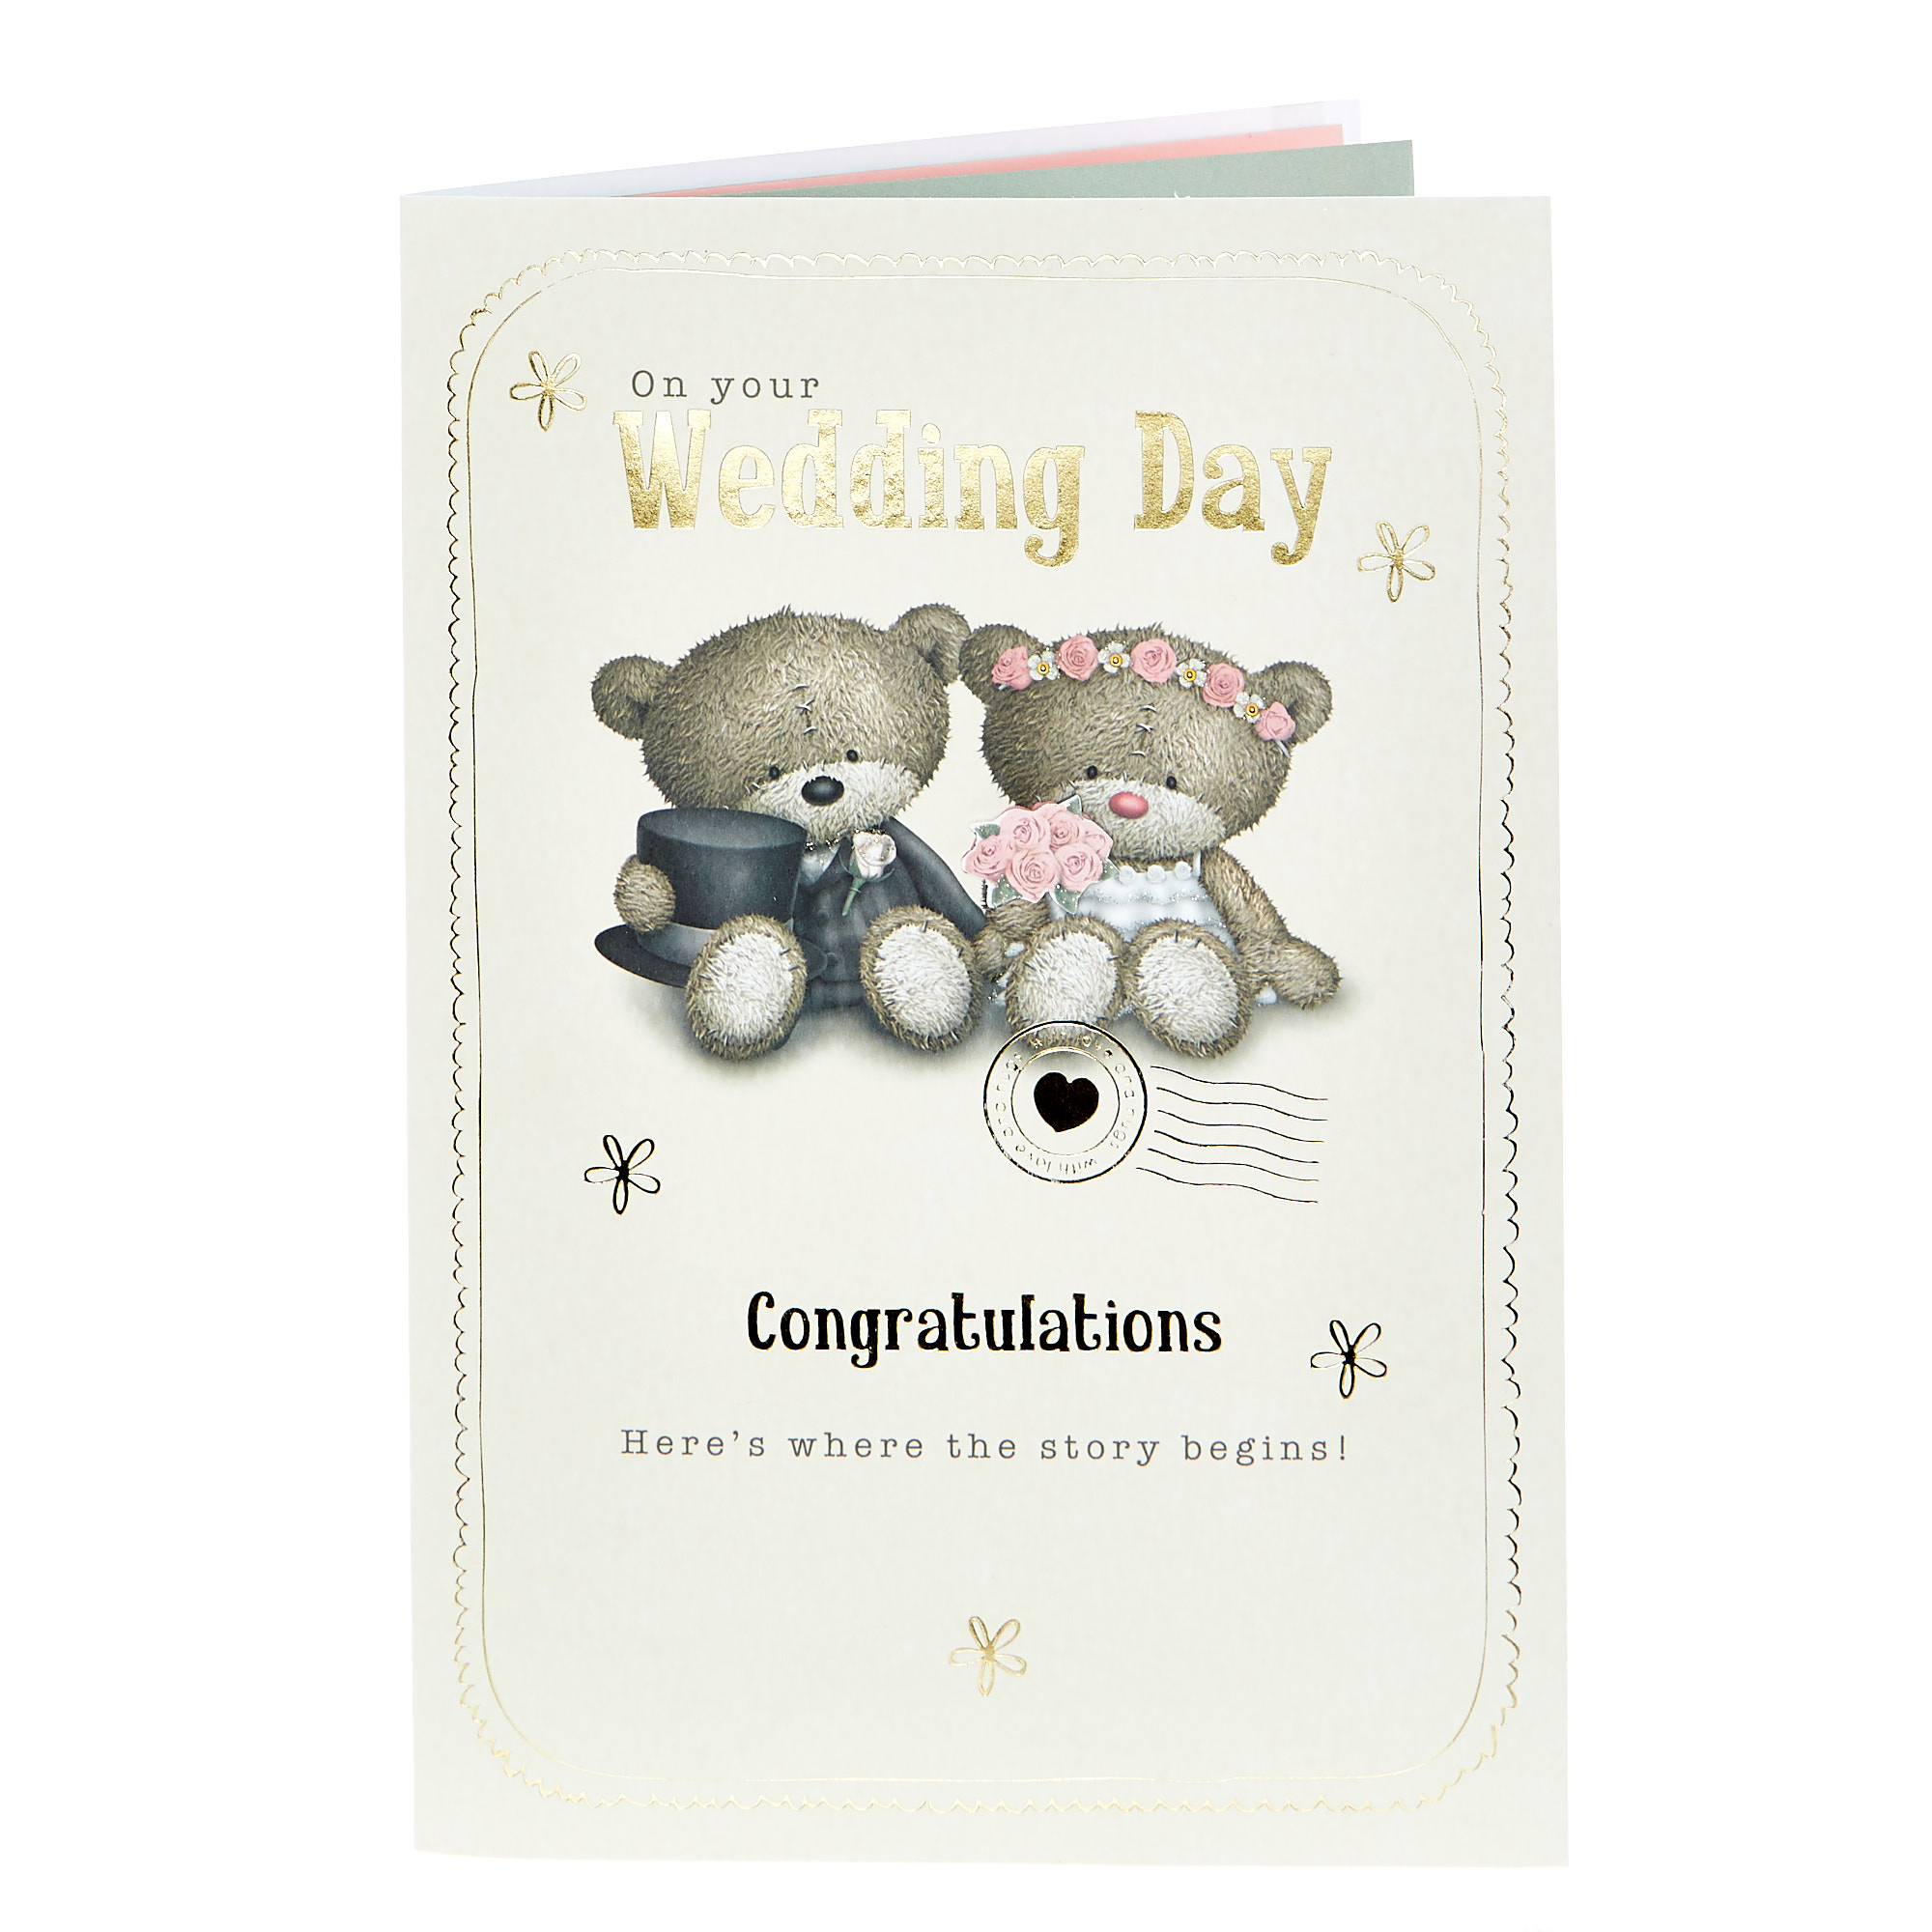 Hugs Bear Wedding Card - Where The Story Begins